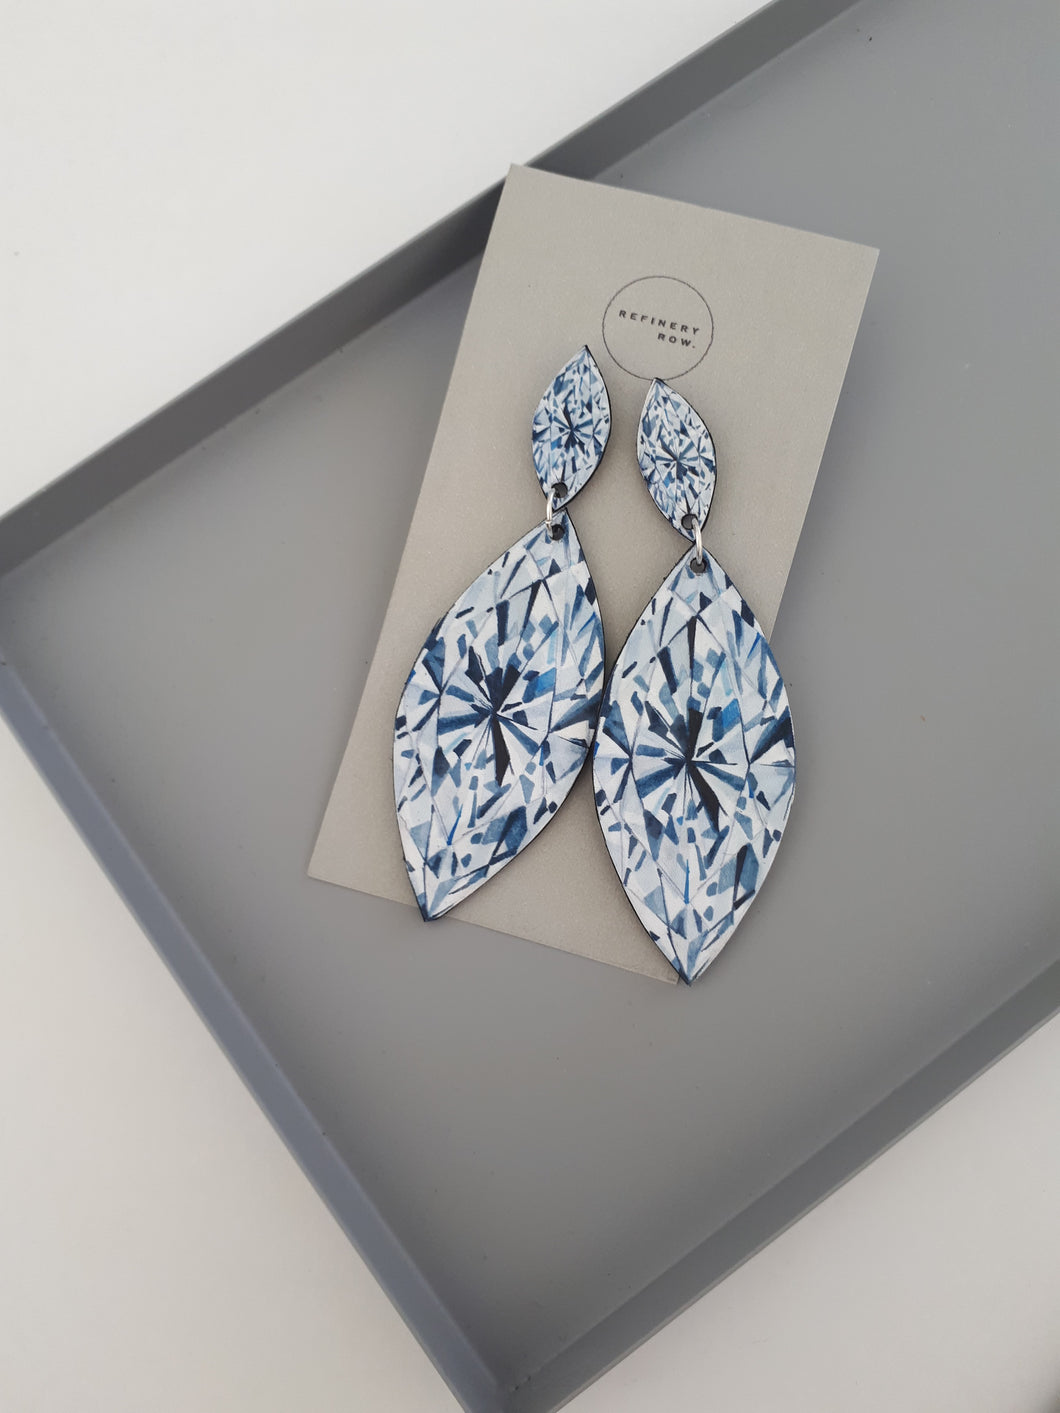 Marquise Cut Diamond illustration Drop Earrings - Mandi at Home